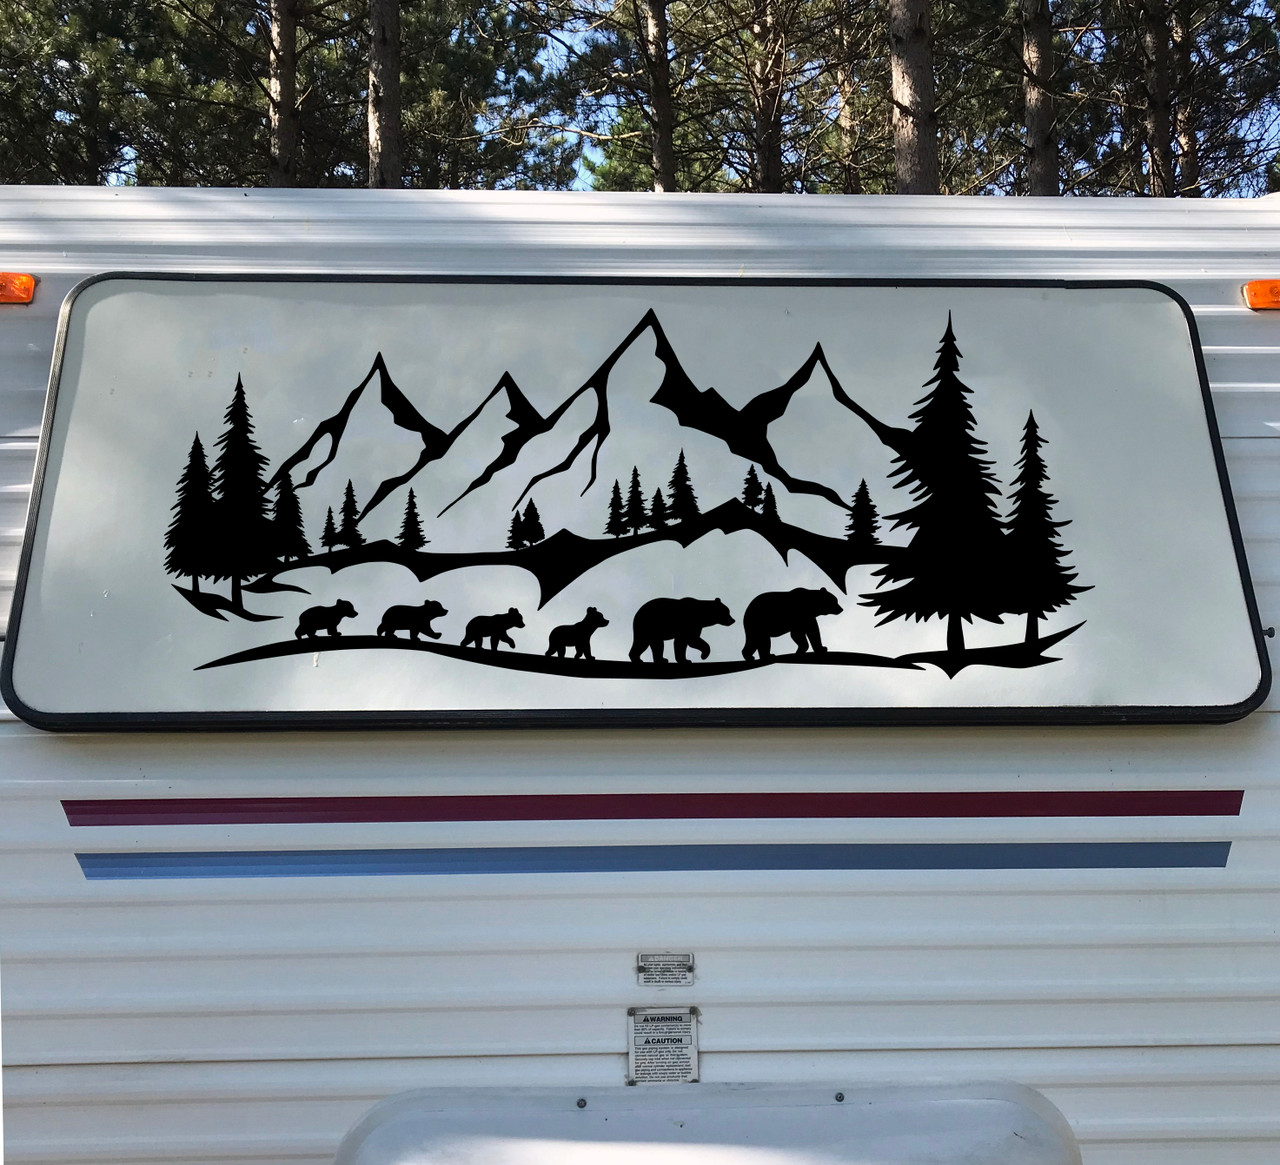 Bear Family of 6 Mountains Forest Scene Vinyl Decal V5 - RV Graphics Camping - Die Cut Sticker